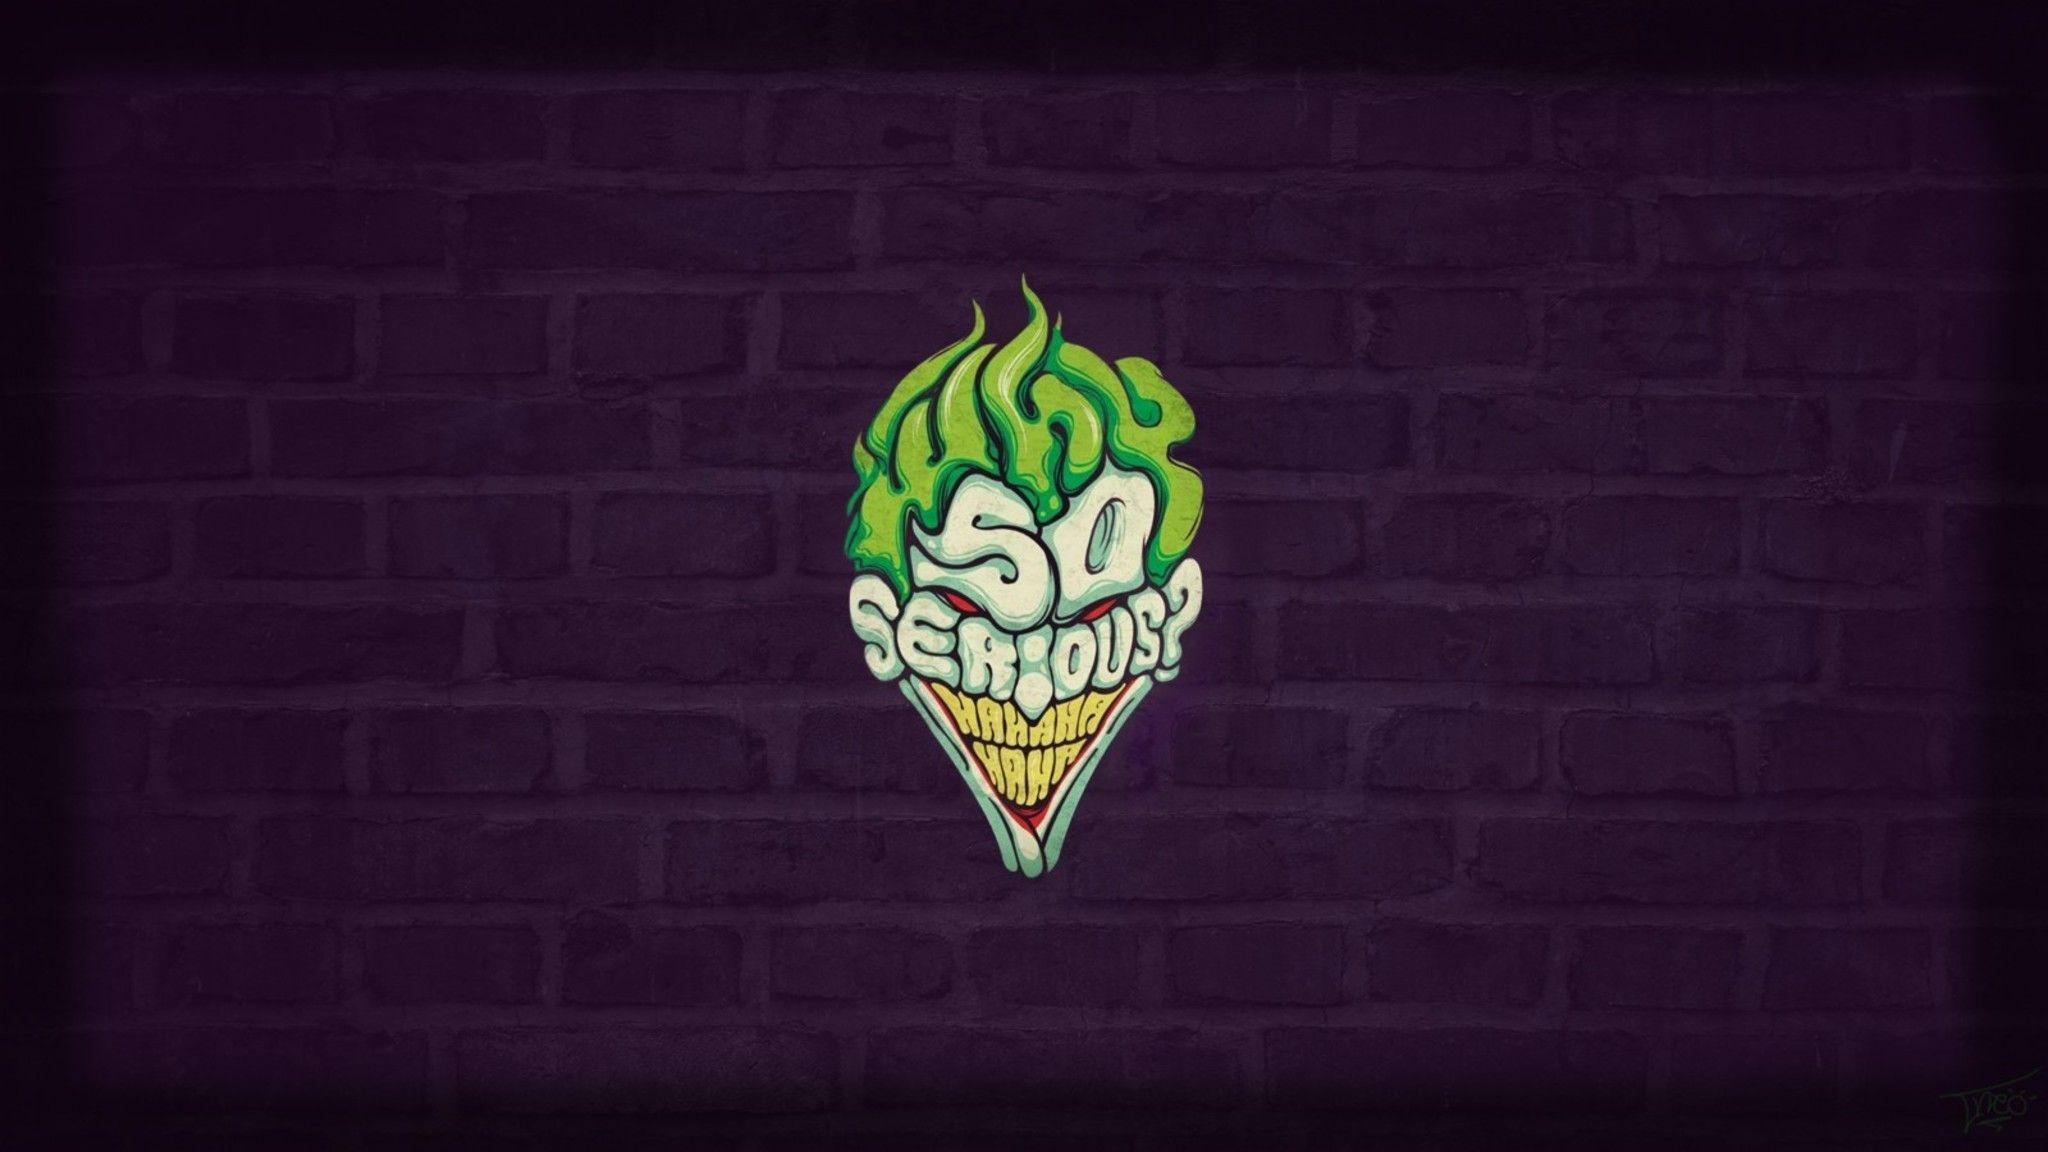 Joker brand wallpapers wallpaper cave - Joker brand wallpaper ...